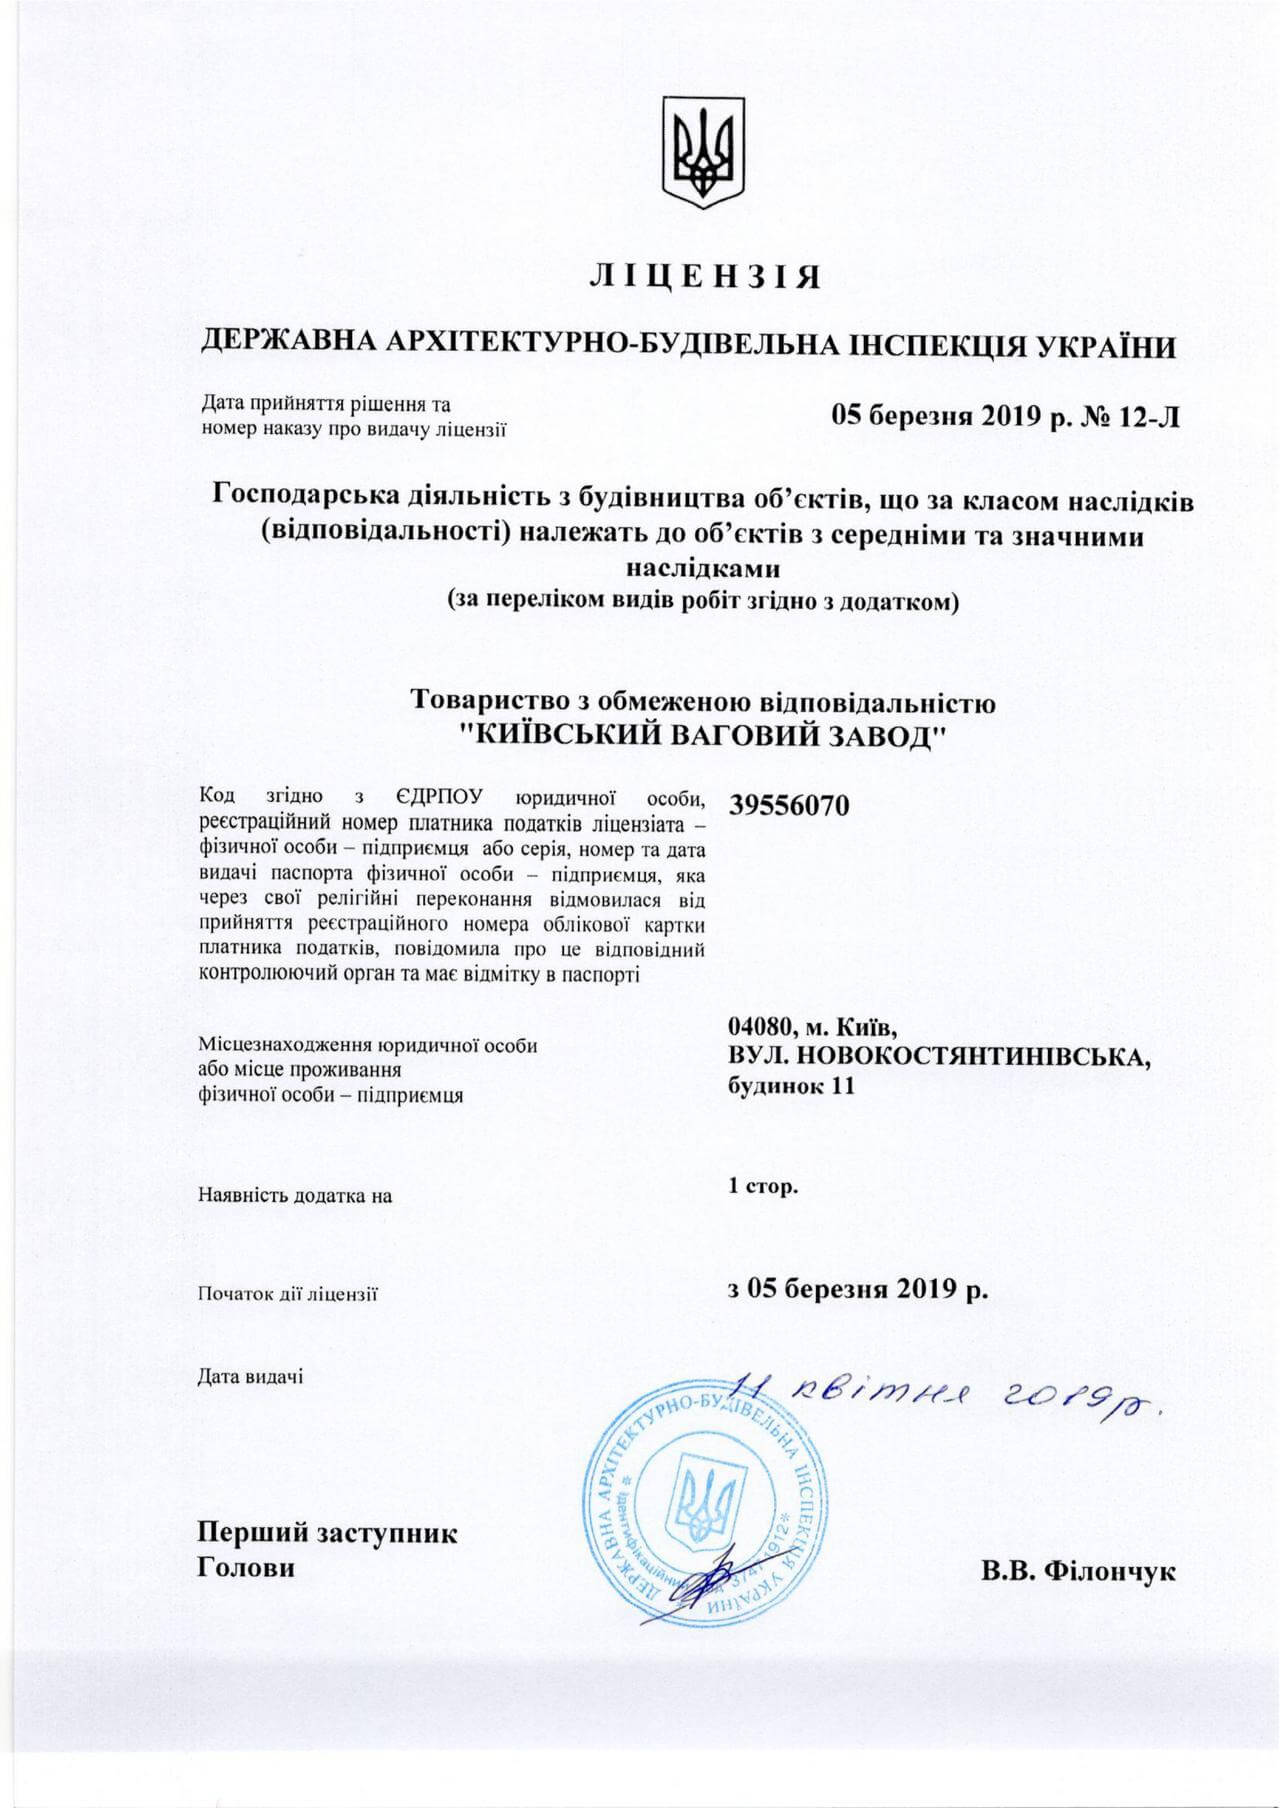 state-building-license-page1